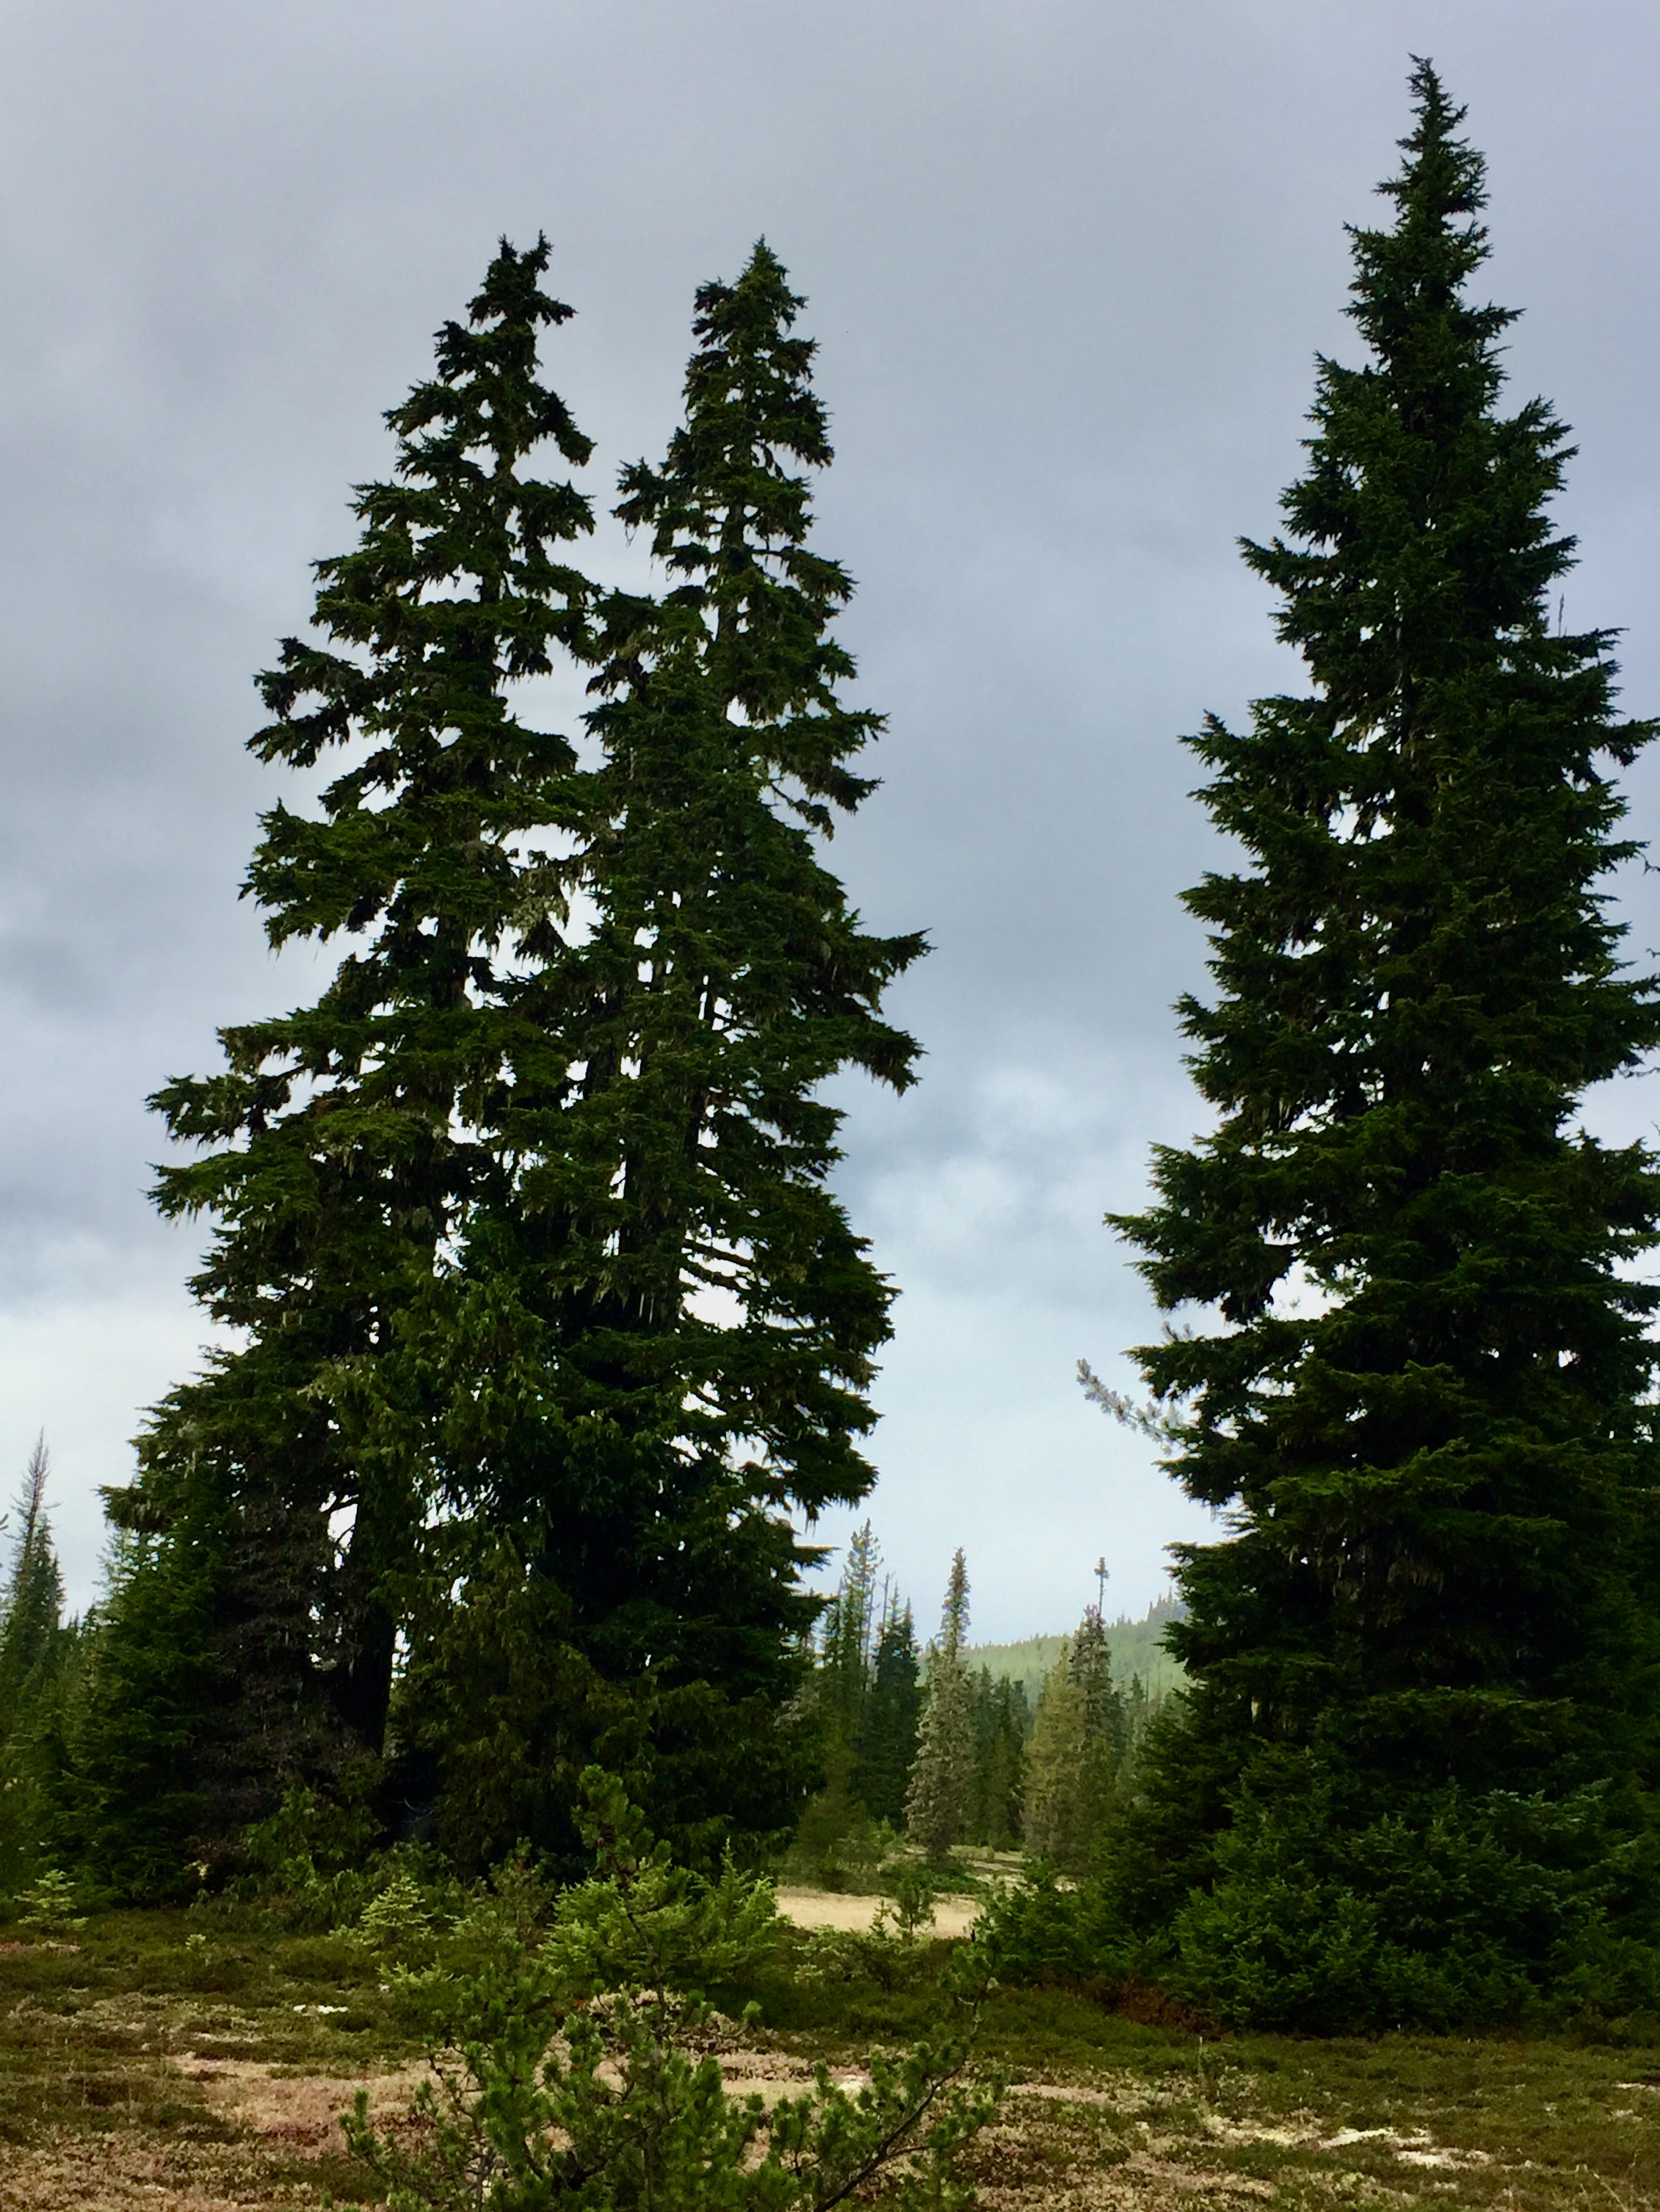 September, 2020 - Vancouver Island, British Columbia - Strathcona Provincial Park - Forbidden Plateau - Alpine trees